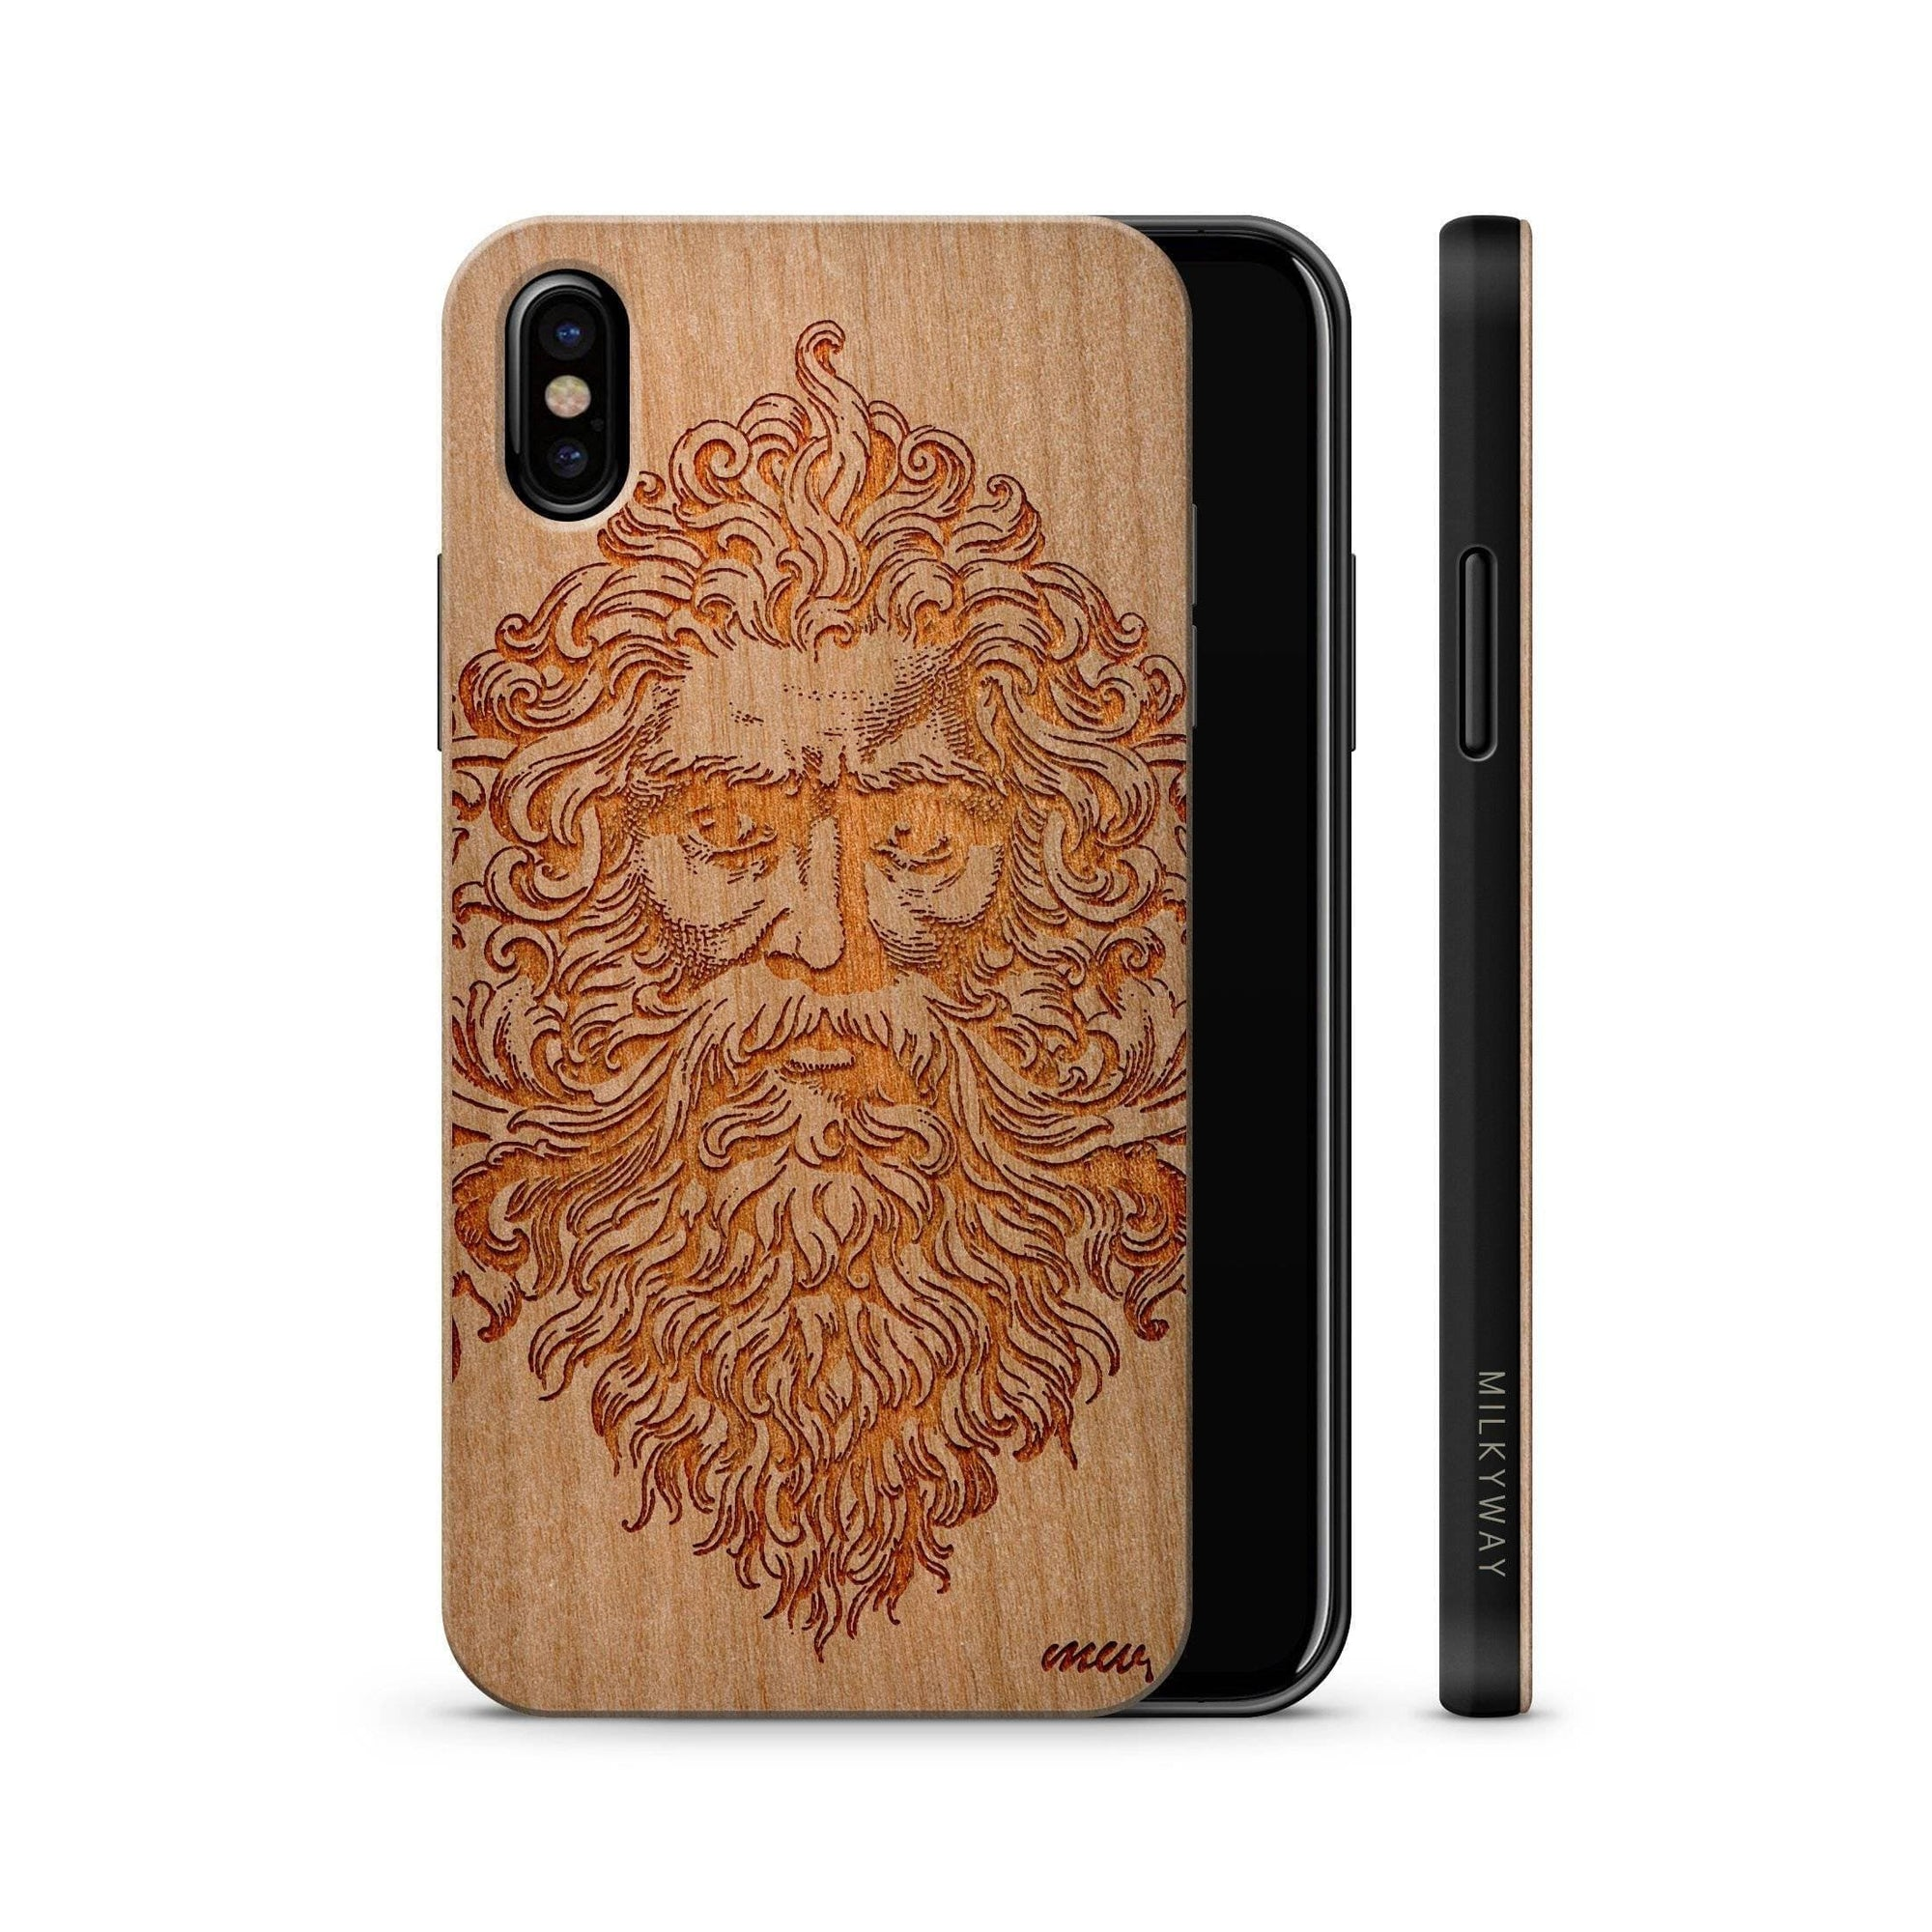 Ancient Greek God Zeus iPhone X Wood Case